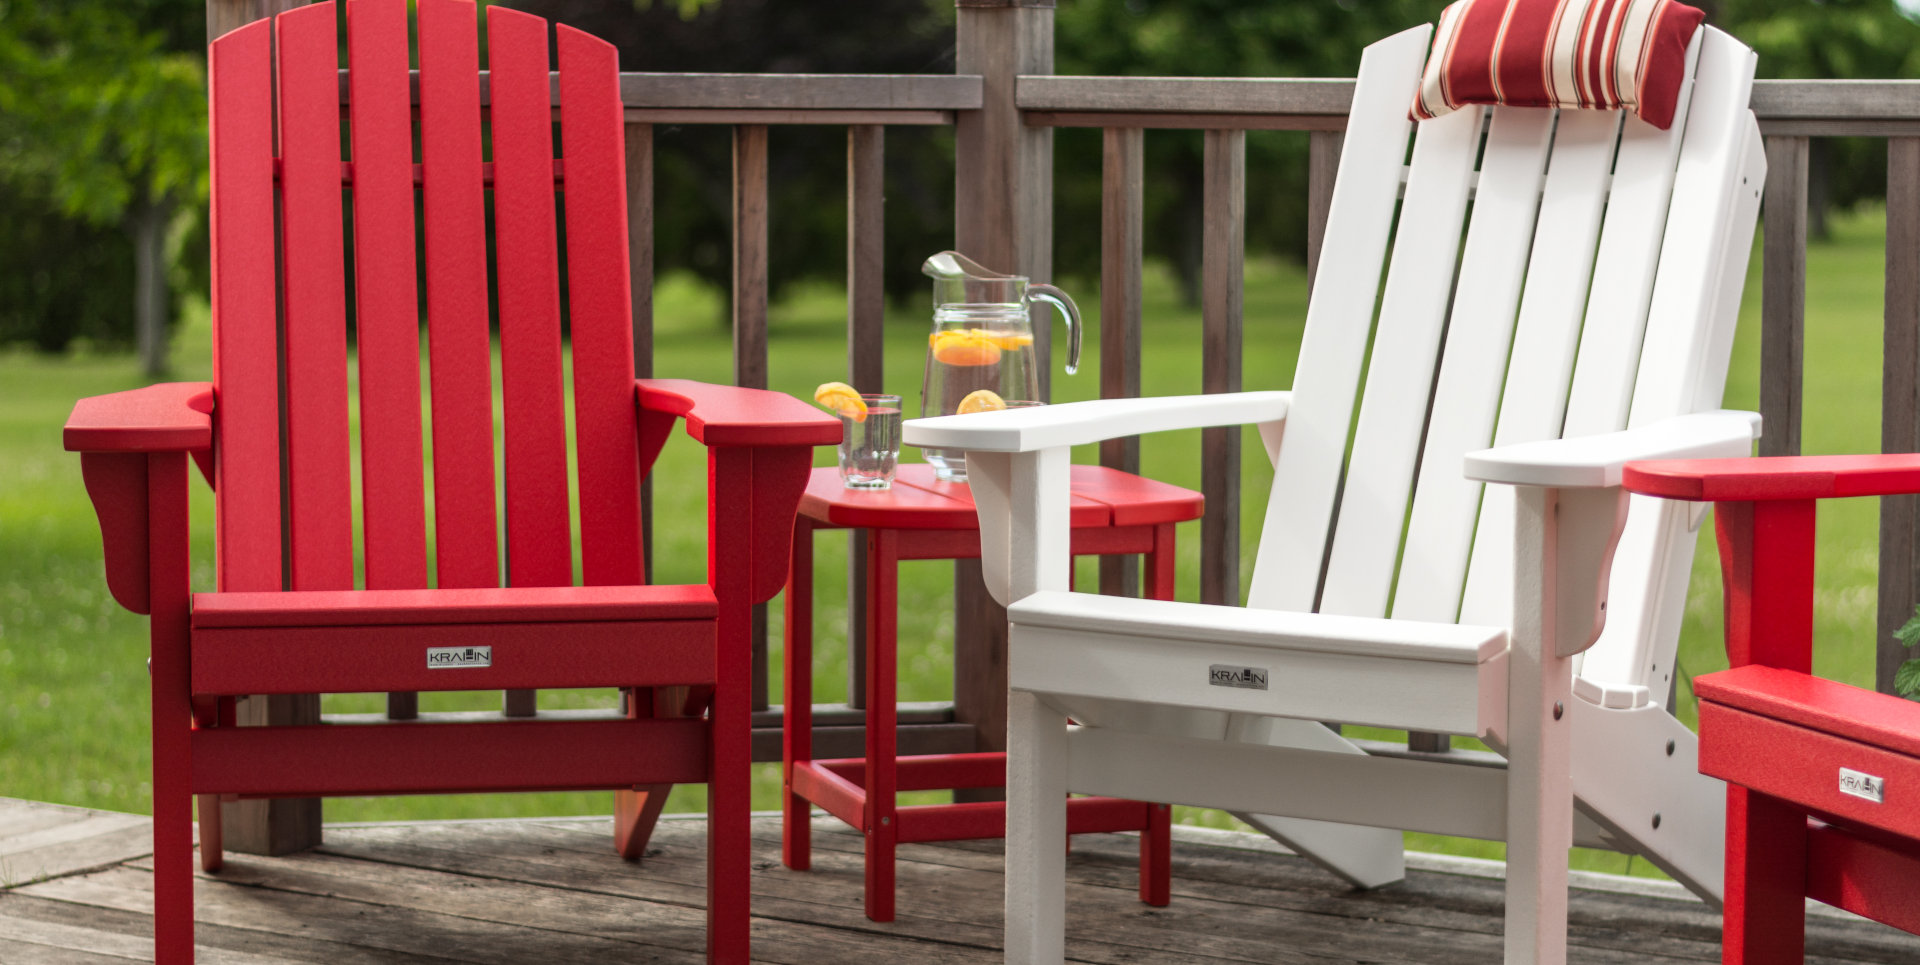 muskoka deck chairs